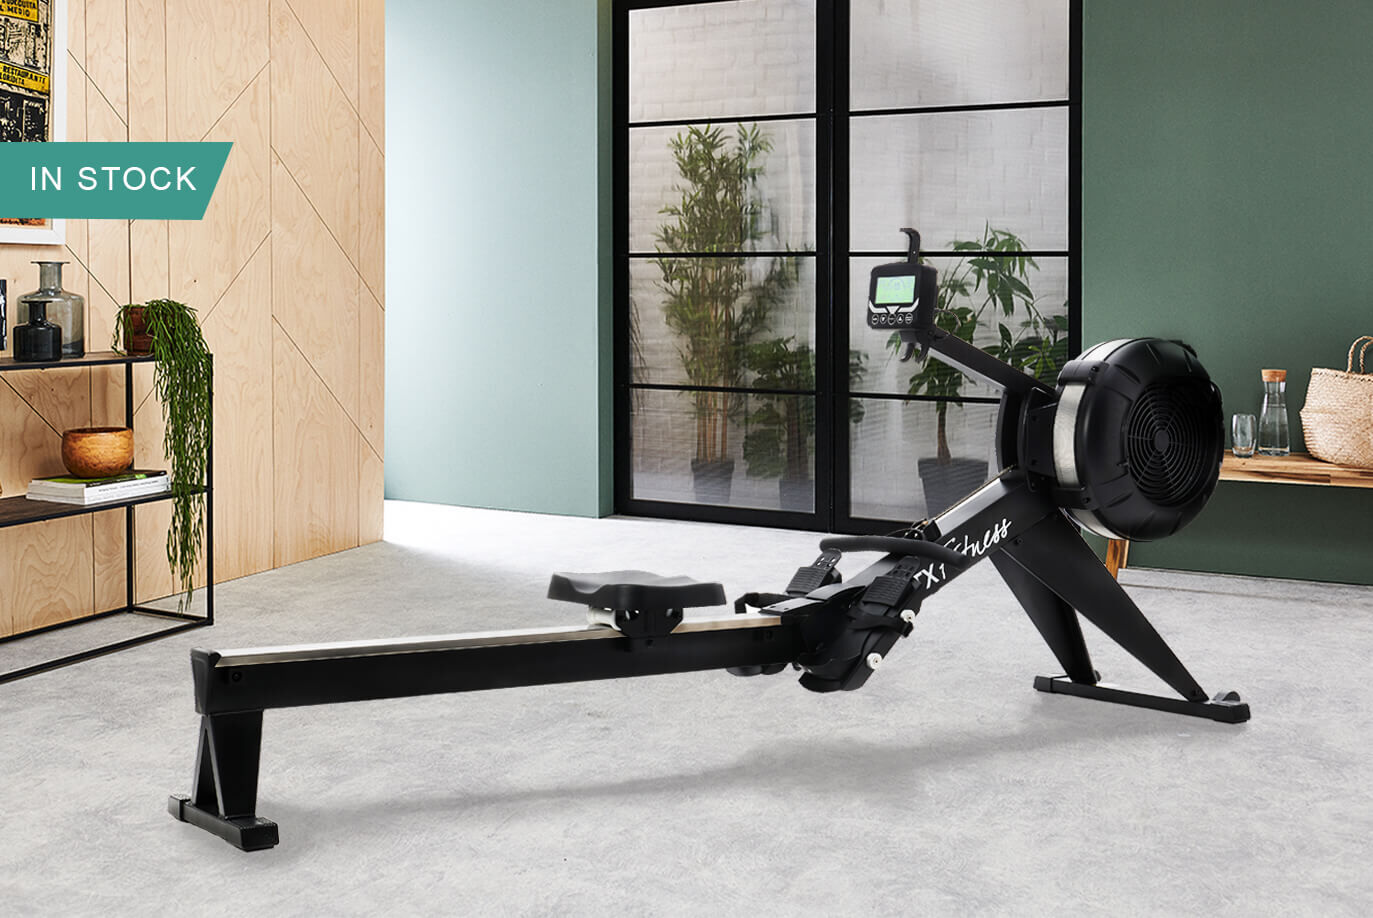 Indoor Rower from JTX Fitness - Ignite Air Rower